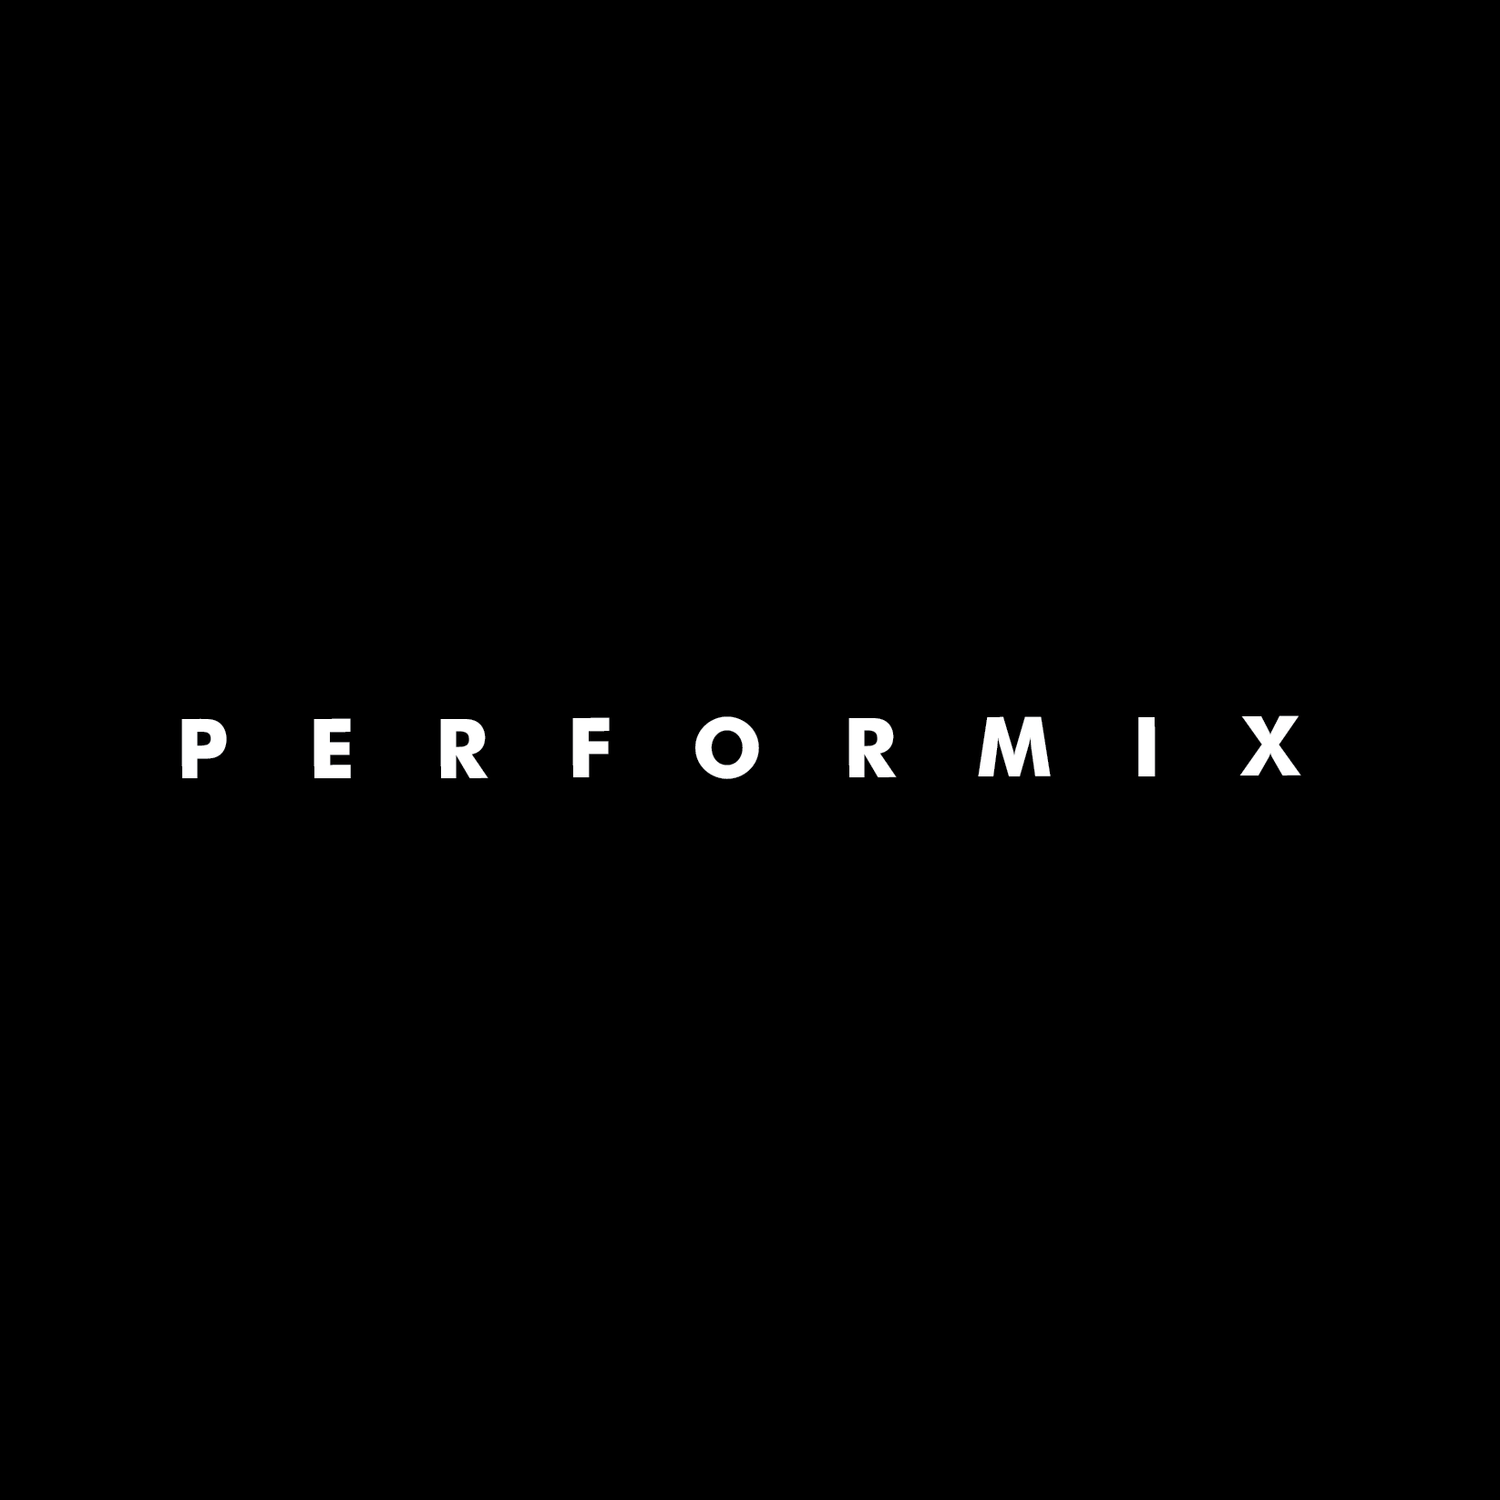 About the Brand Performix